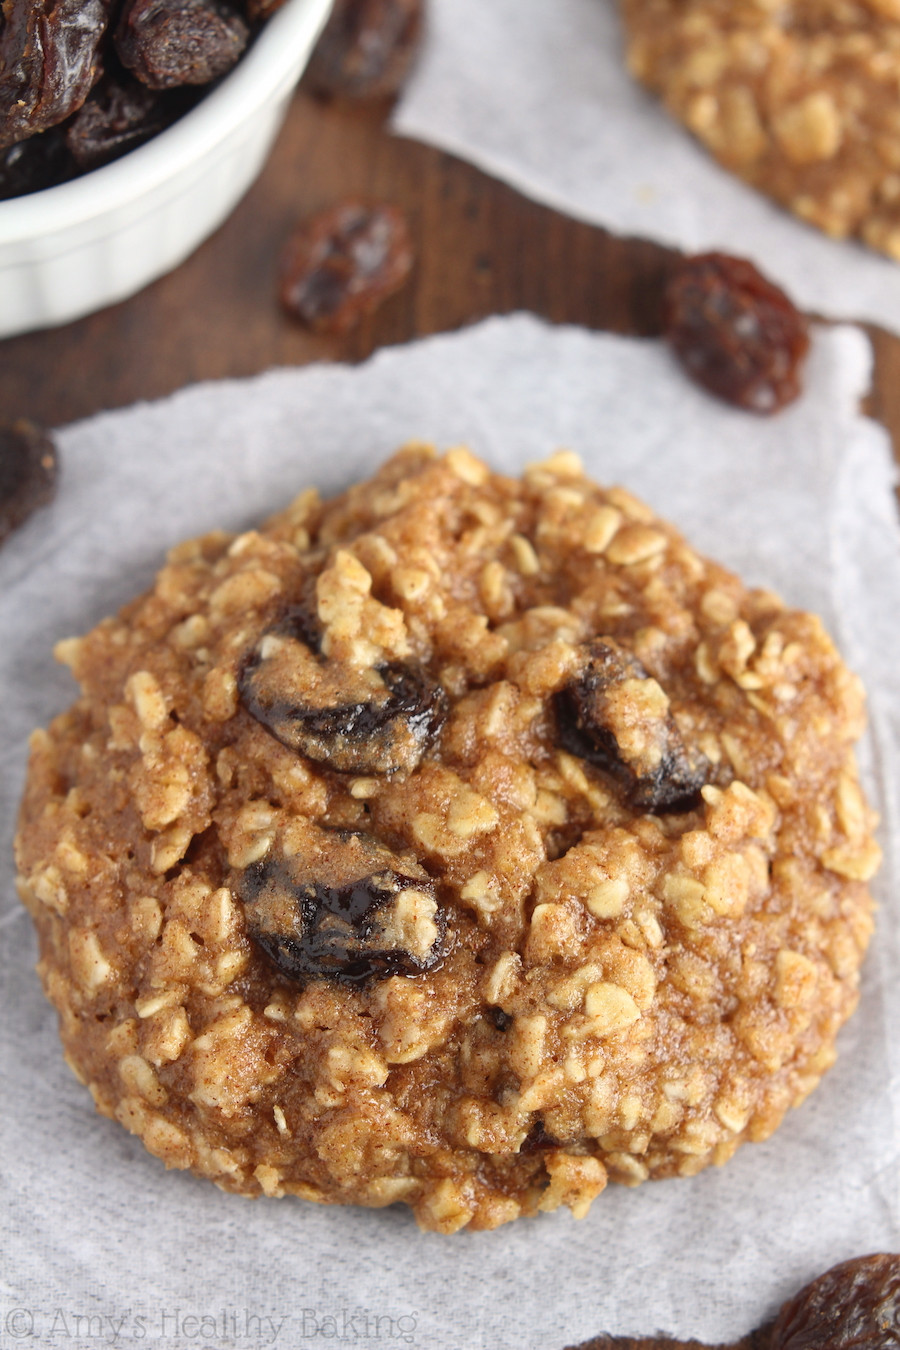 Oatmeal Raisin Cookies Recipe Healthy 20 Of the Best Ideas for the Ultimate Healthy soft & Chewy Oatmeal Raisin Cookies